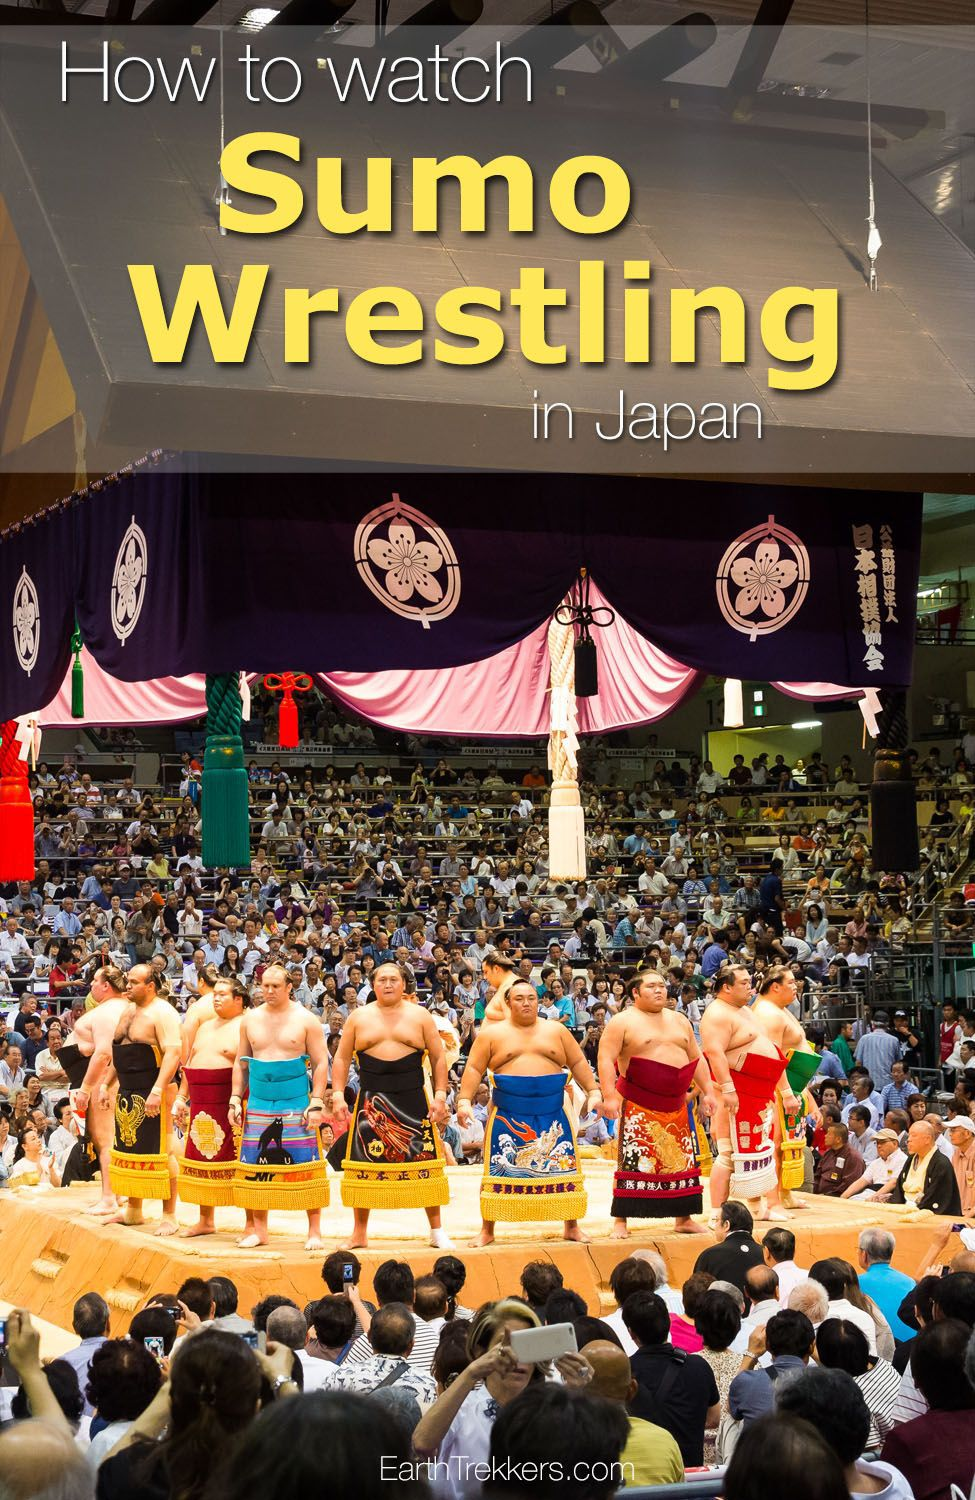 bfa0da500ead How To Watch Sumo Wrestling in Japan